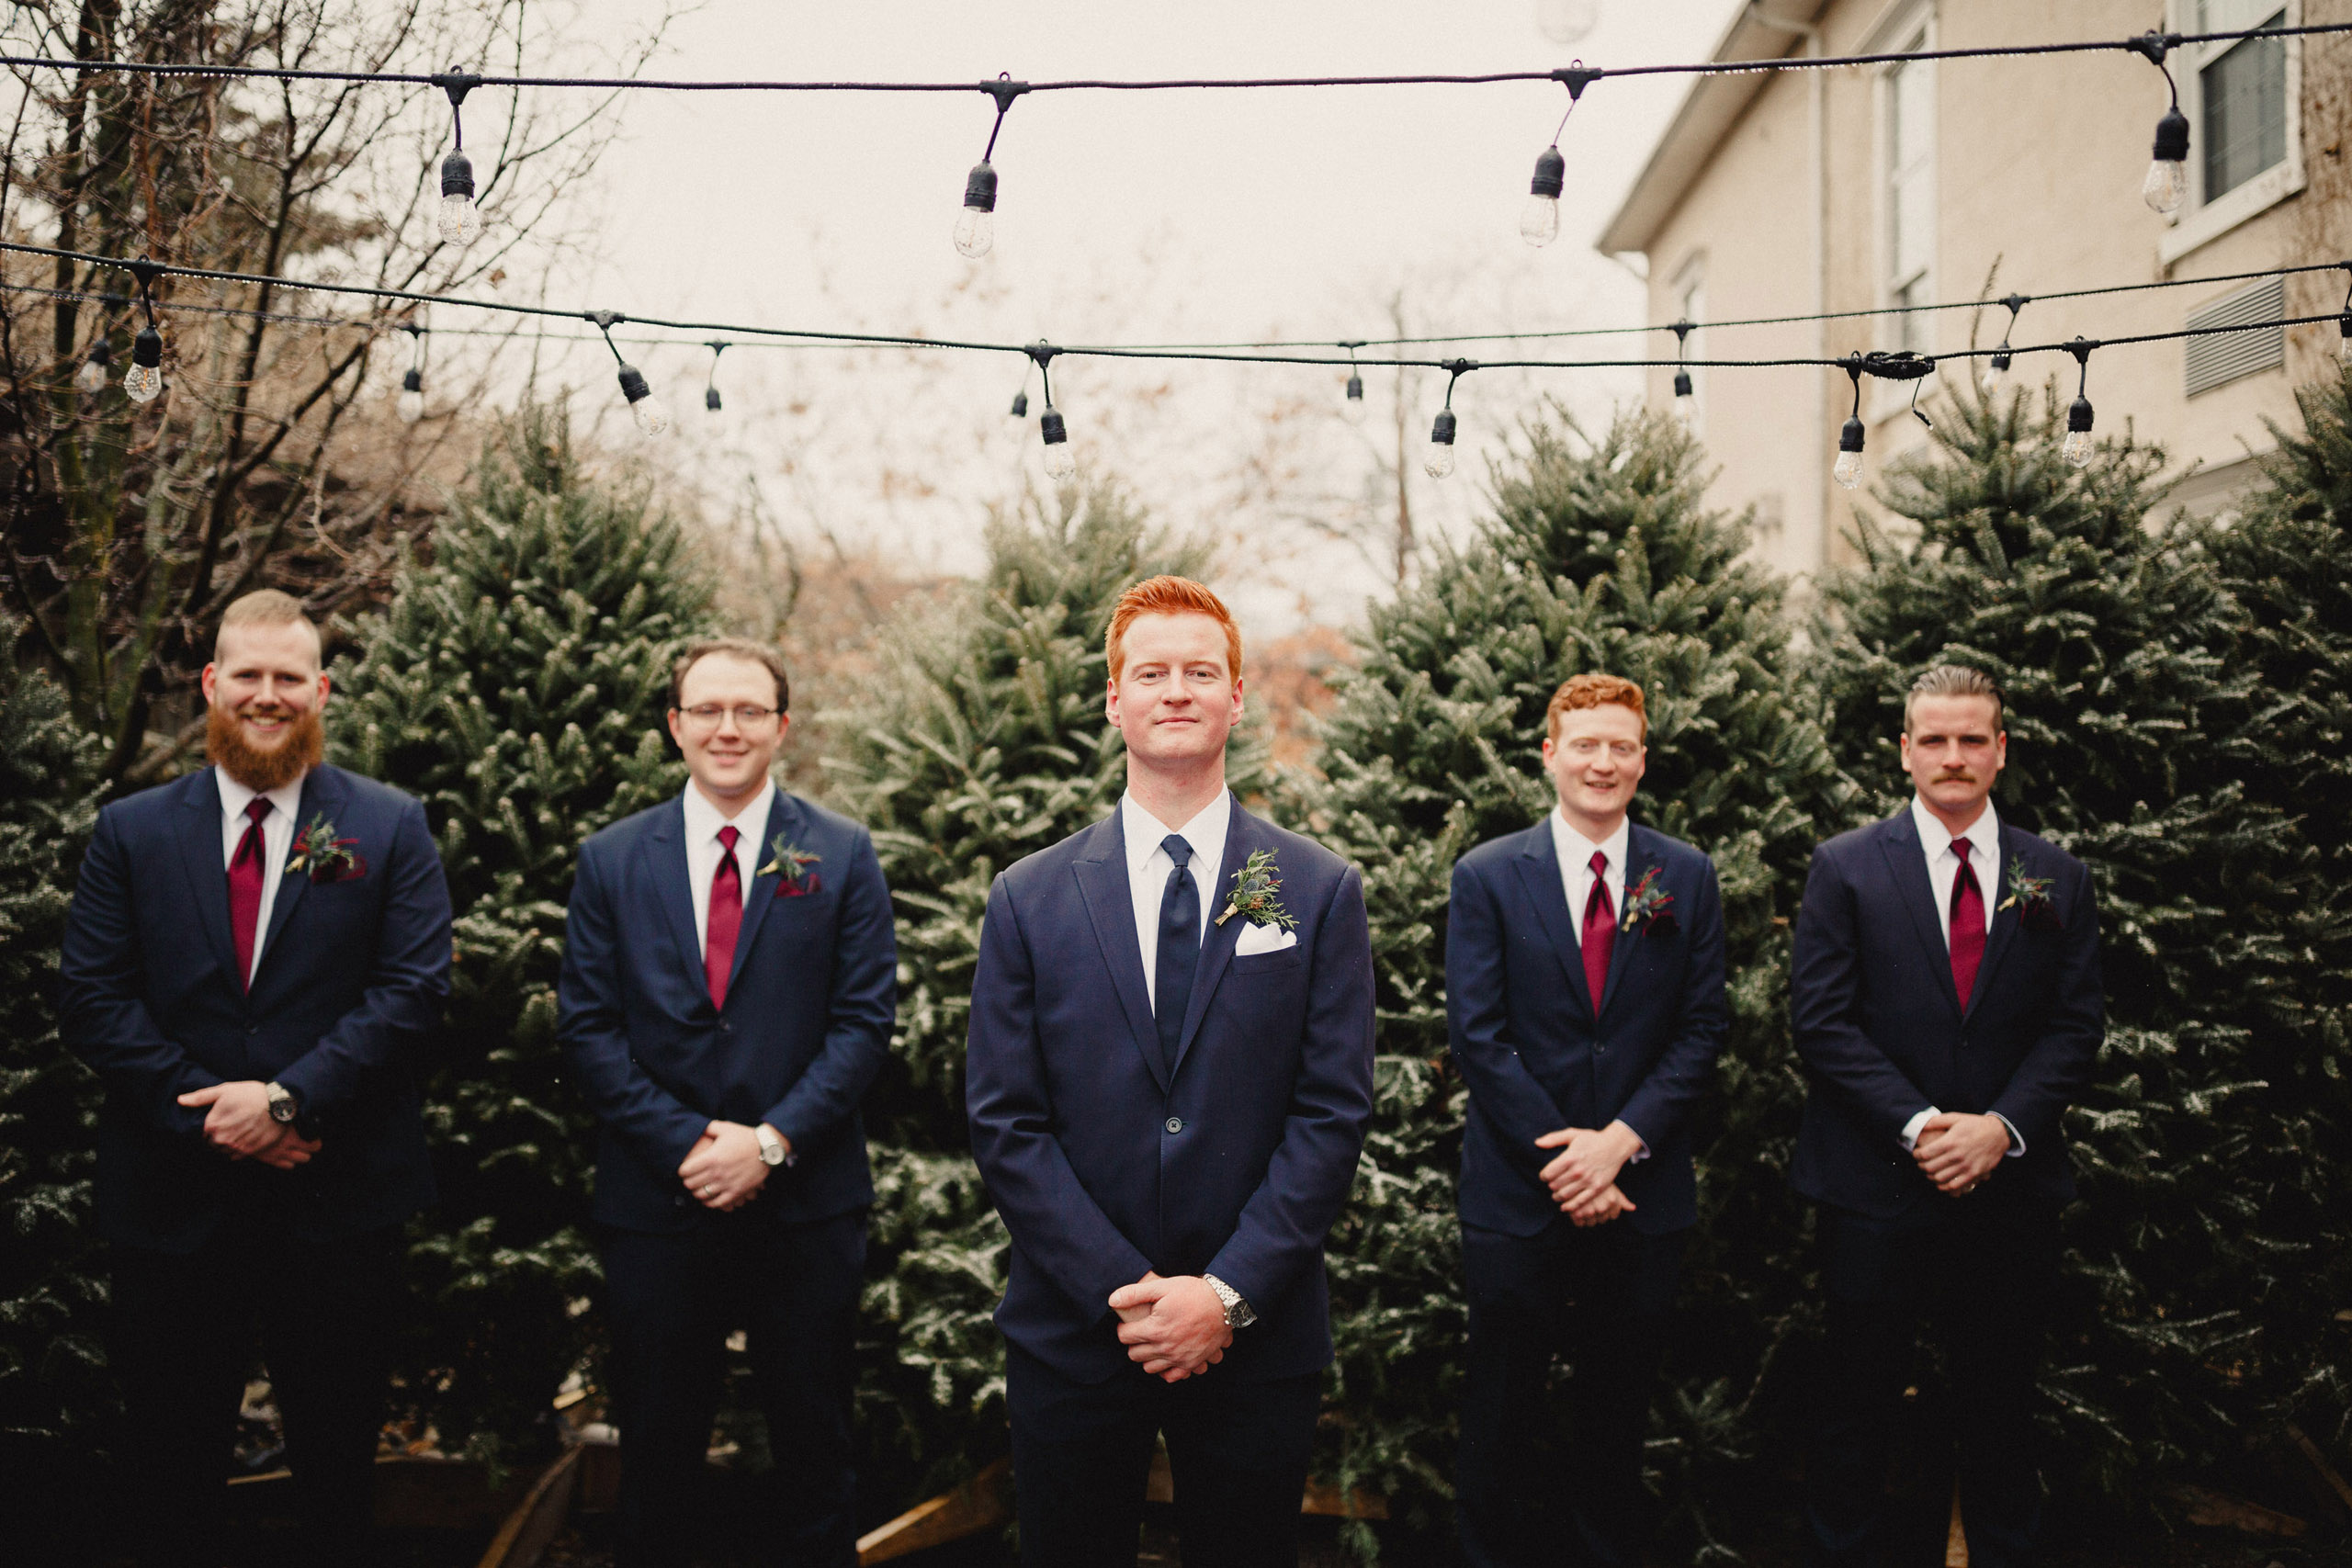 groomsmen watering can winter wedding inn on the twenty photographer